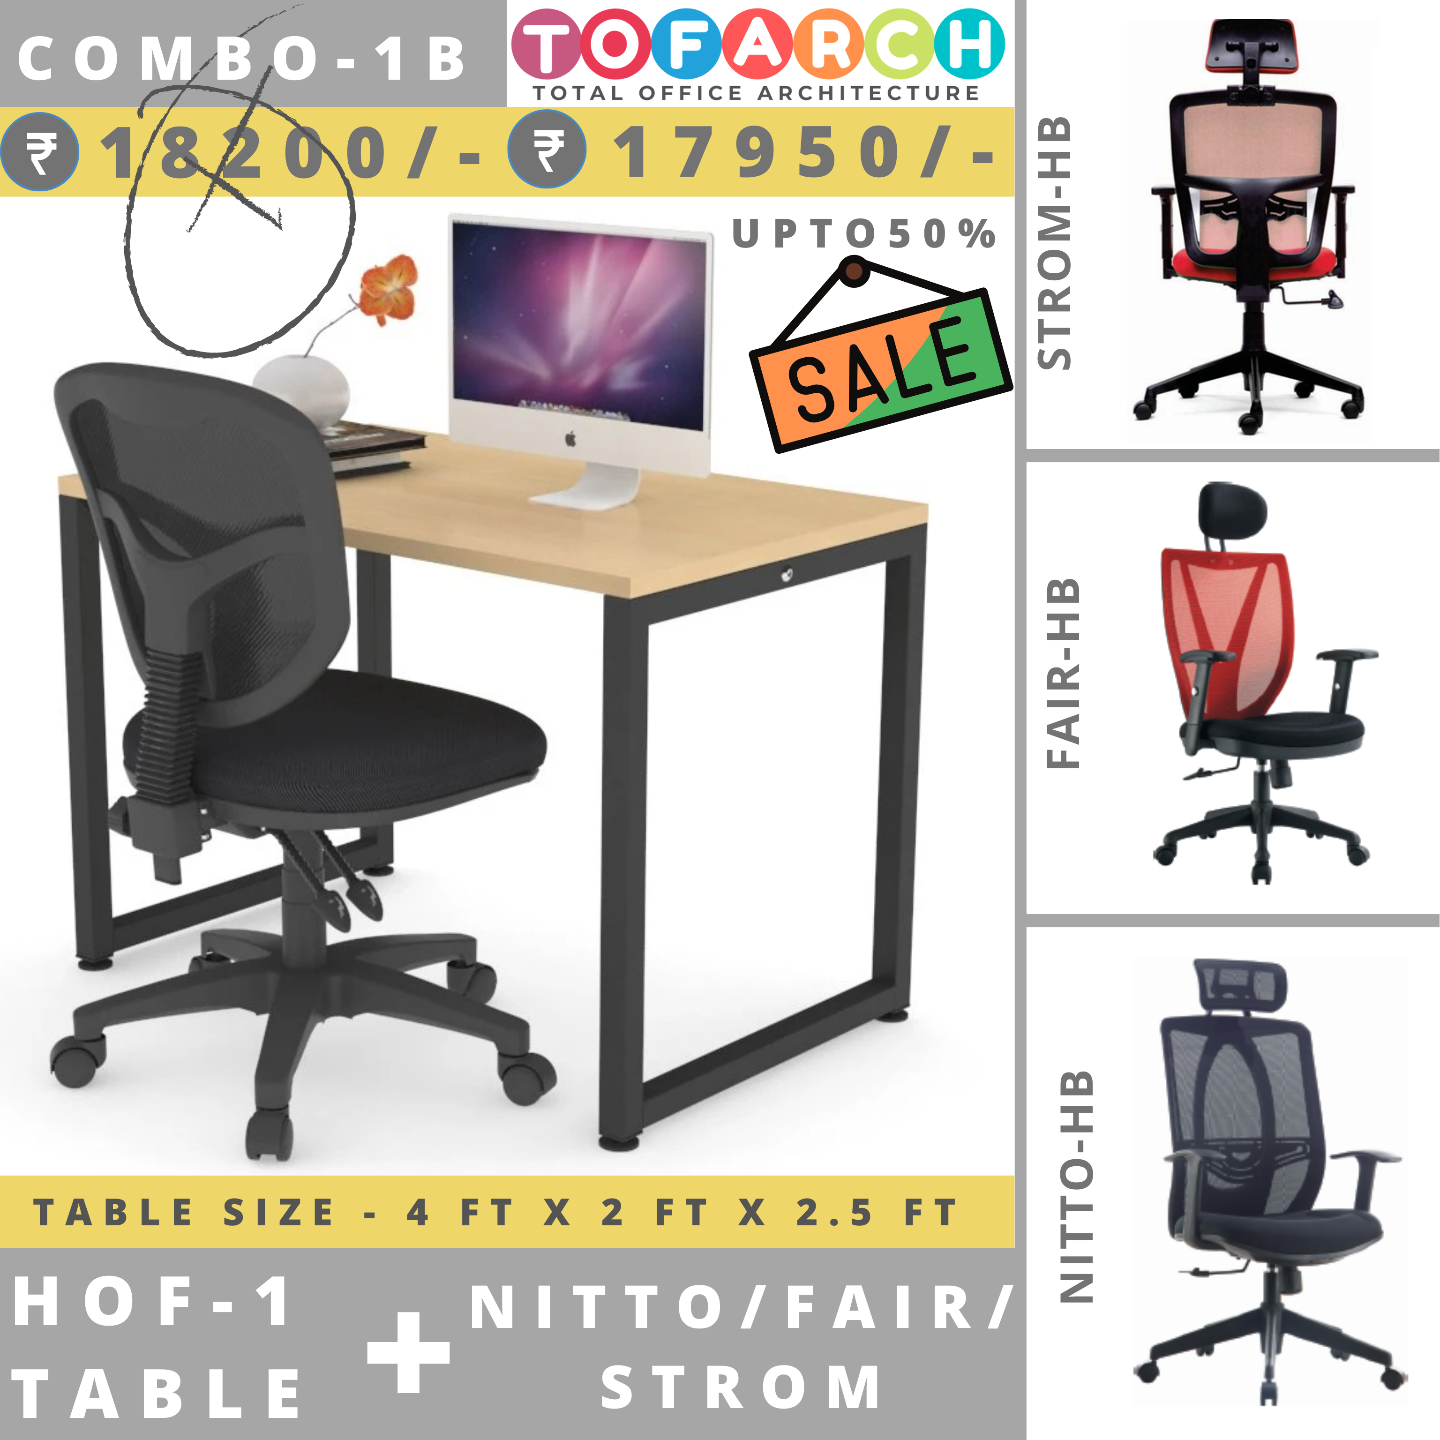 Table Chair Combo - 1B HOF 1 + NITTO  FAIR  STROM